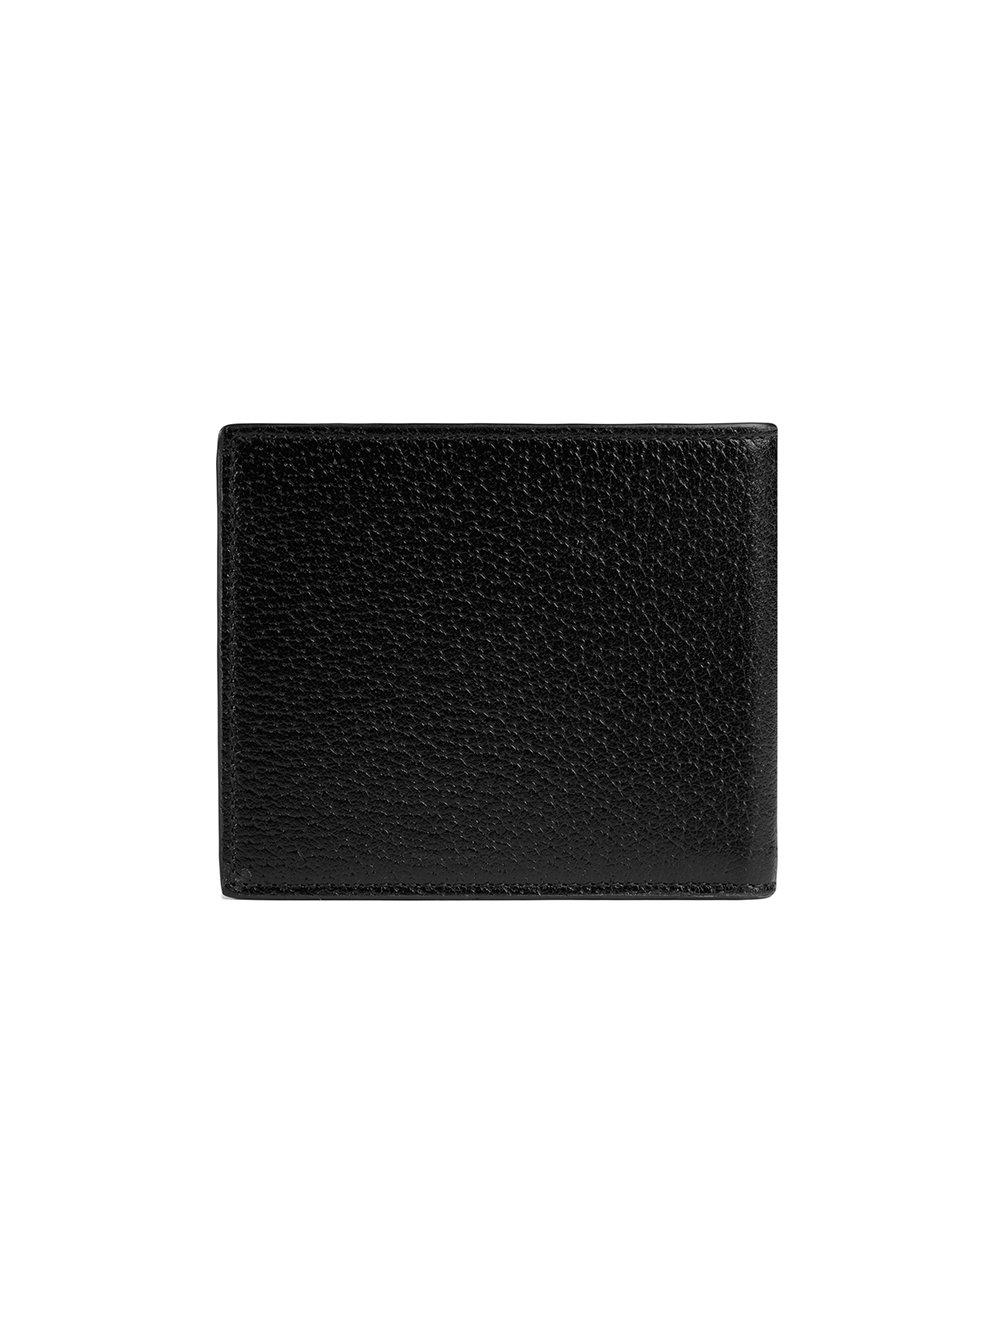 9bc1b6c5453c Gucci Animalier Leather Wallet in Black for Men - Lyst